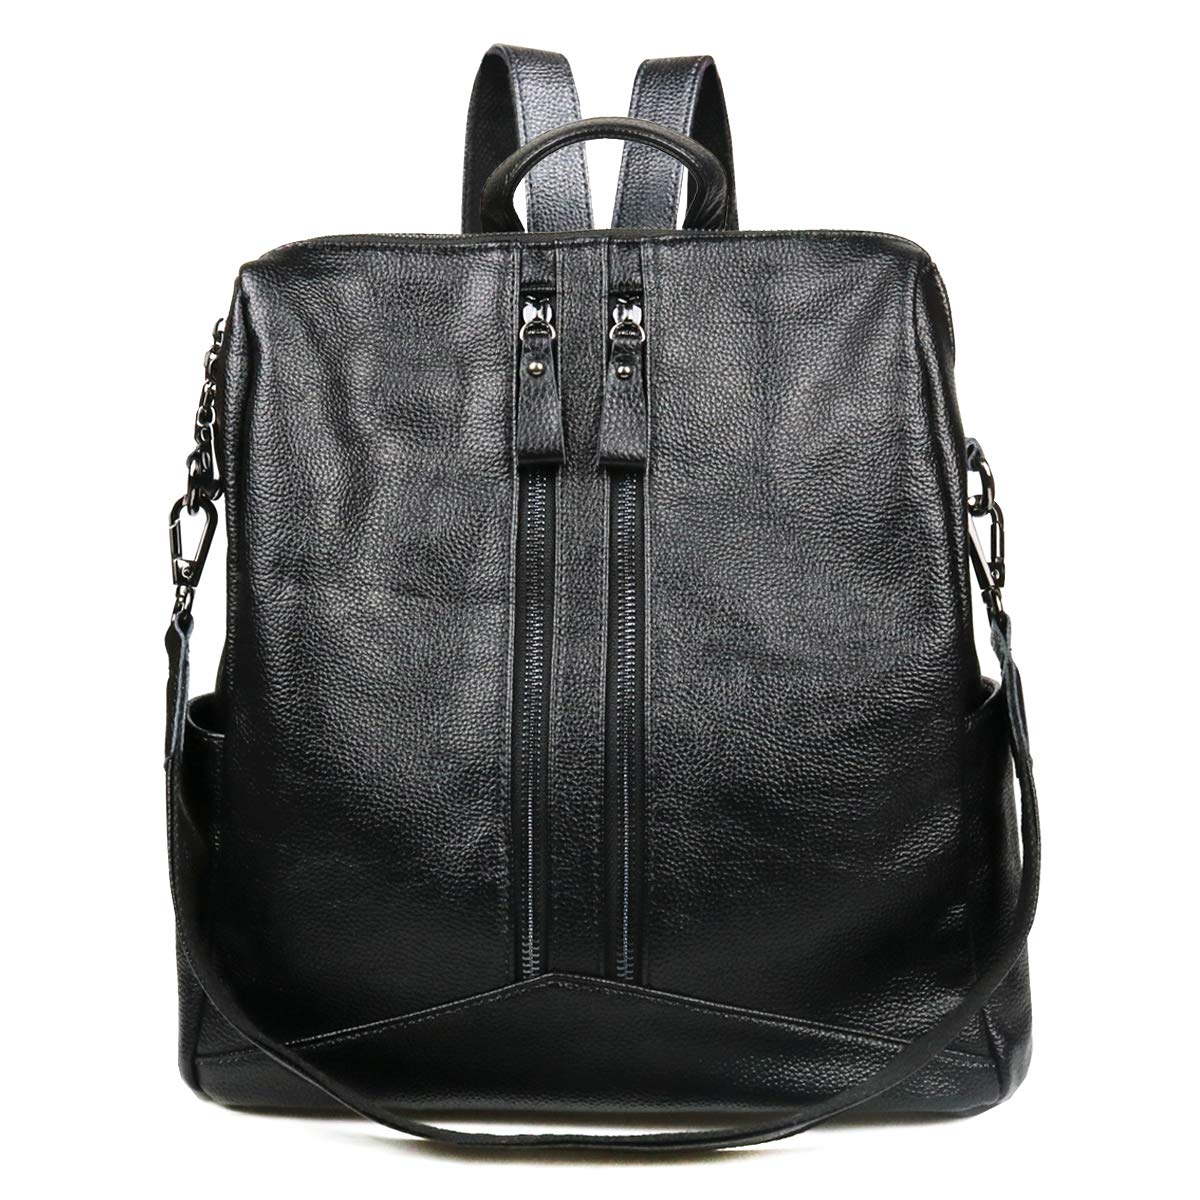 Women Black Leather Backpack Purse Fashion School Bags Shoulder Bag Casual Daypack